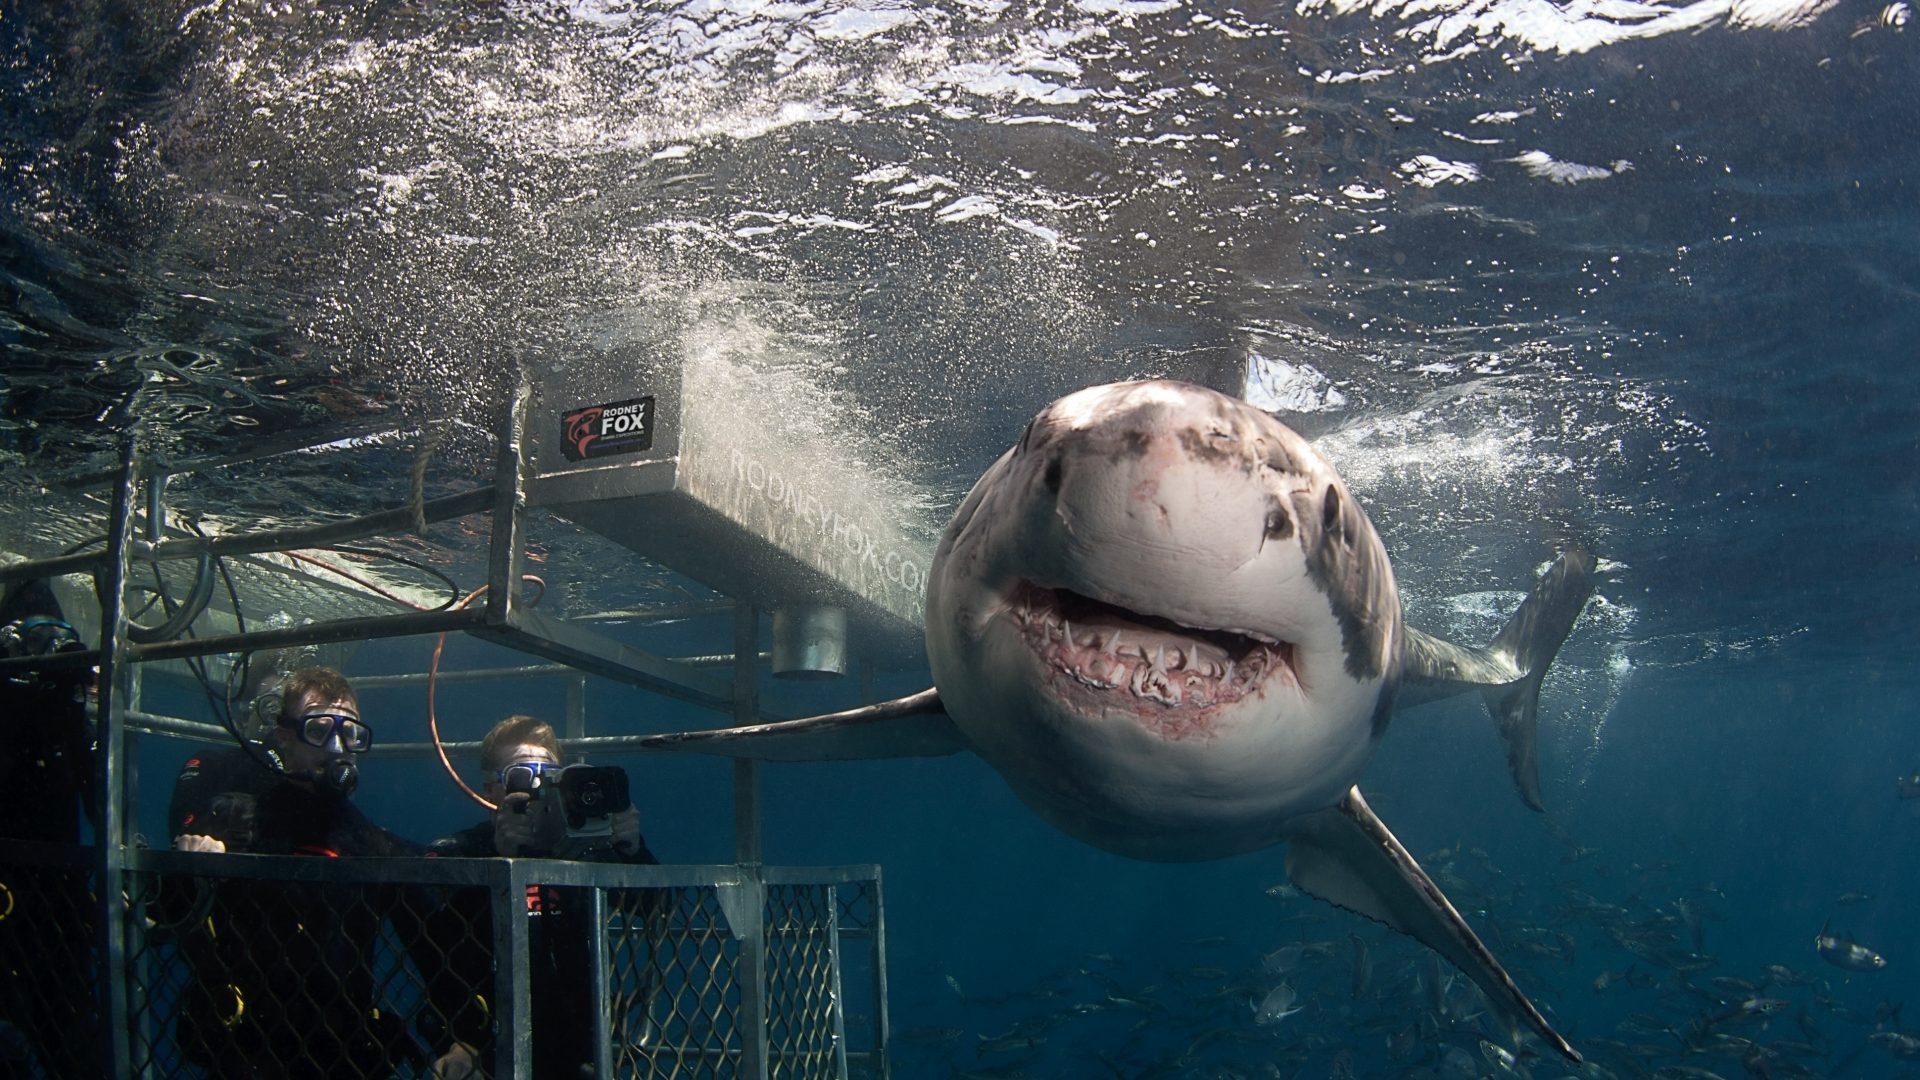 A shark swims by the shark tank during a Rodney Fox cage diving expedition.